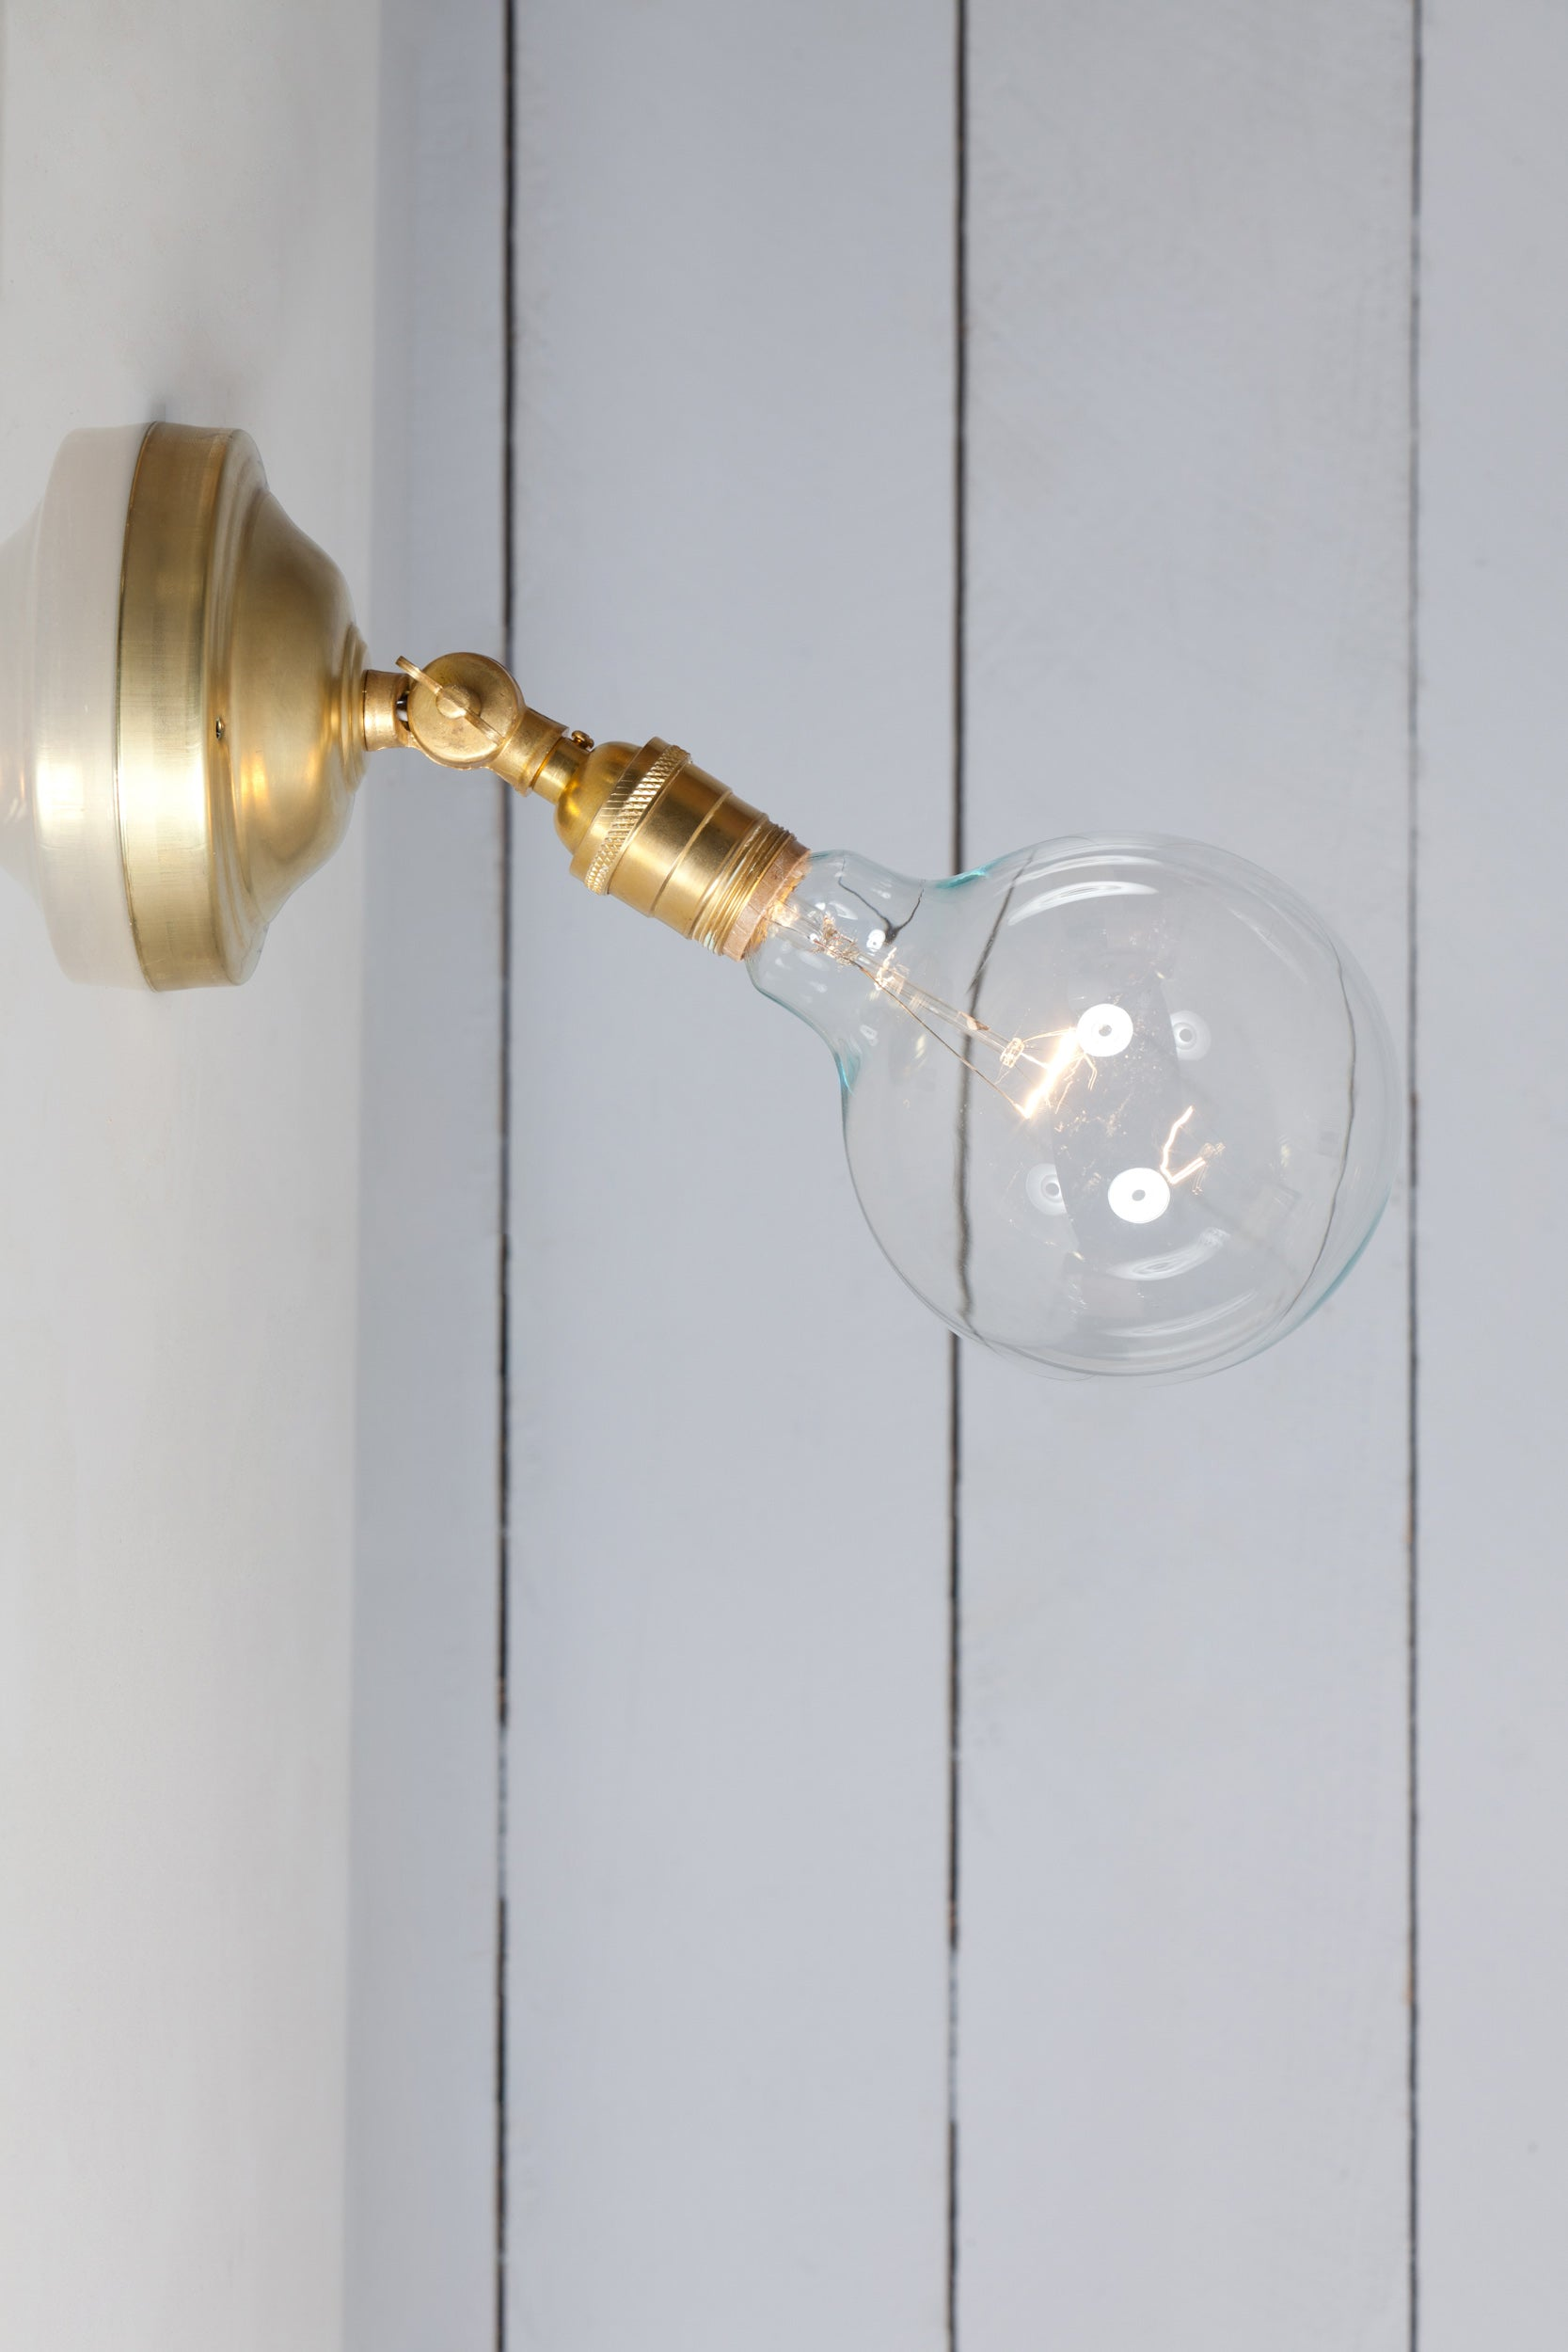 Picture of: Bare Bulb Brass Wall Sconce Angled Lamp Industrial Light Electric